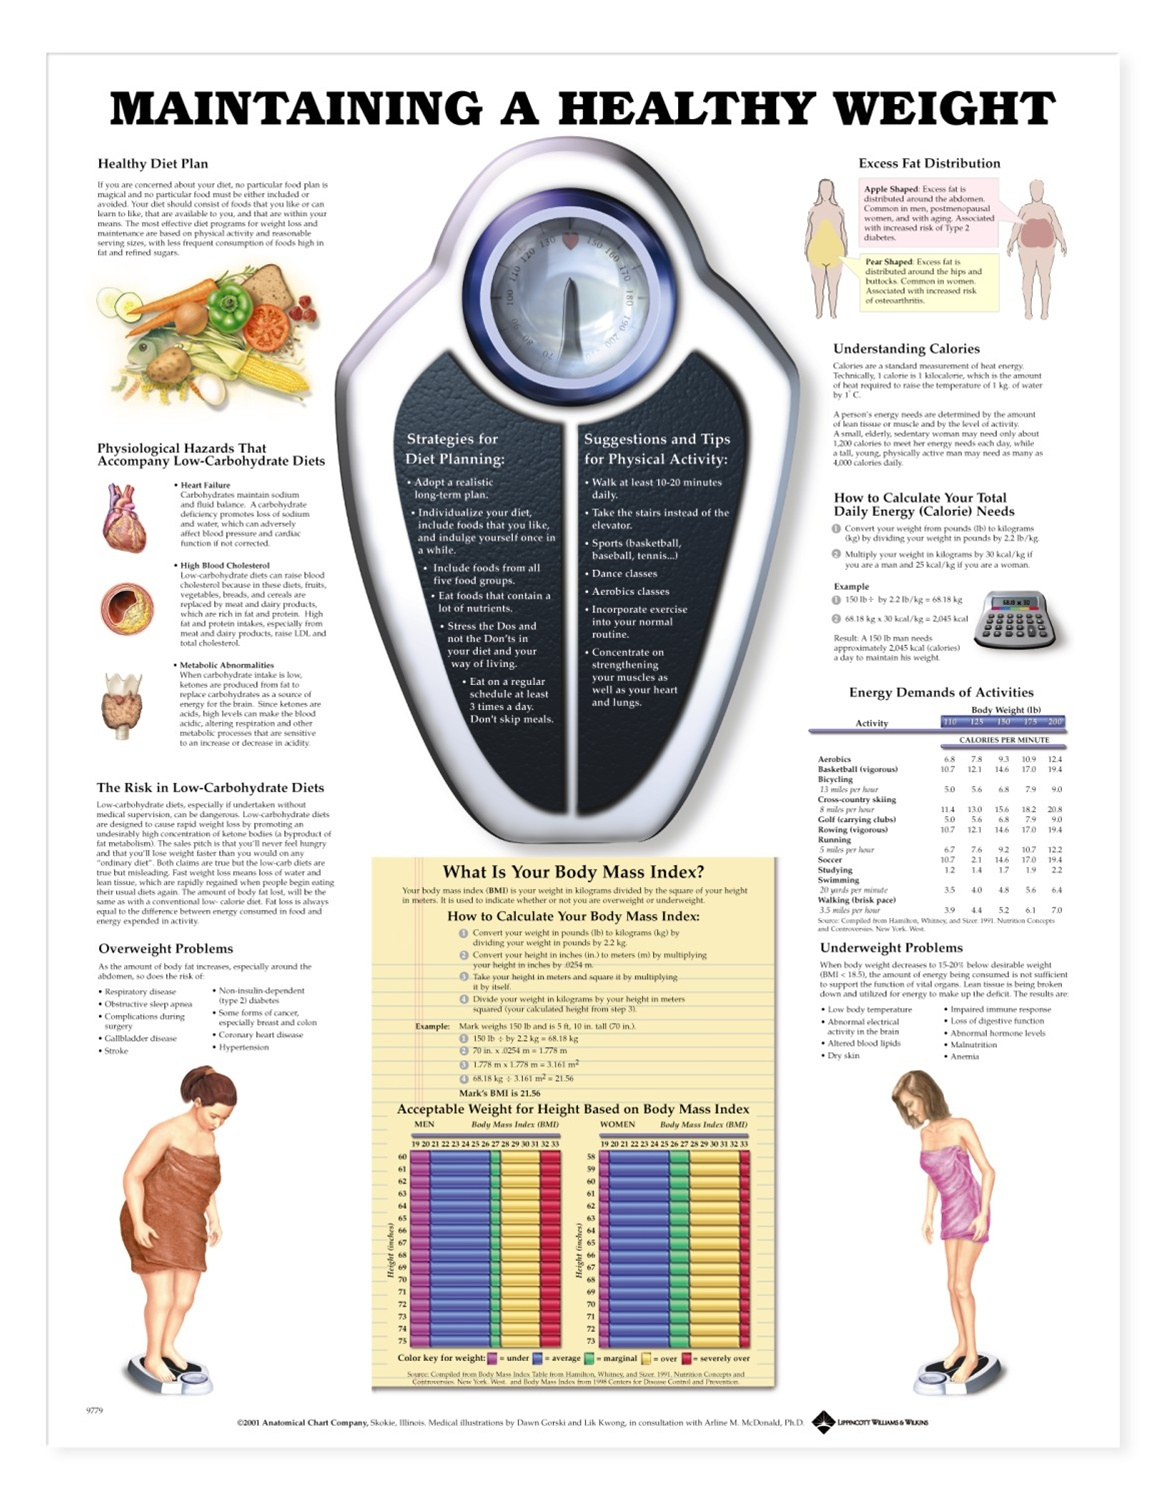 Maintaining An Ethical Capsule Wardrobe: Maintaining A Healthy Weight Anatomical Chart